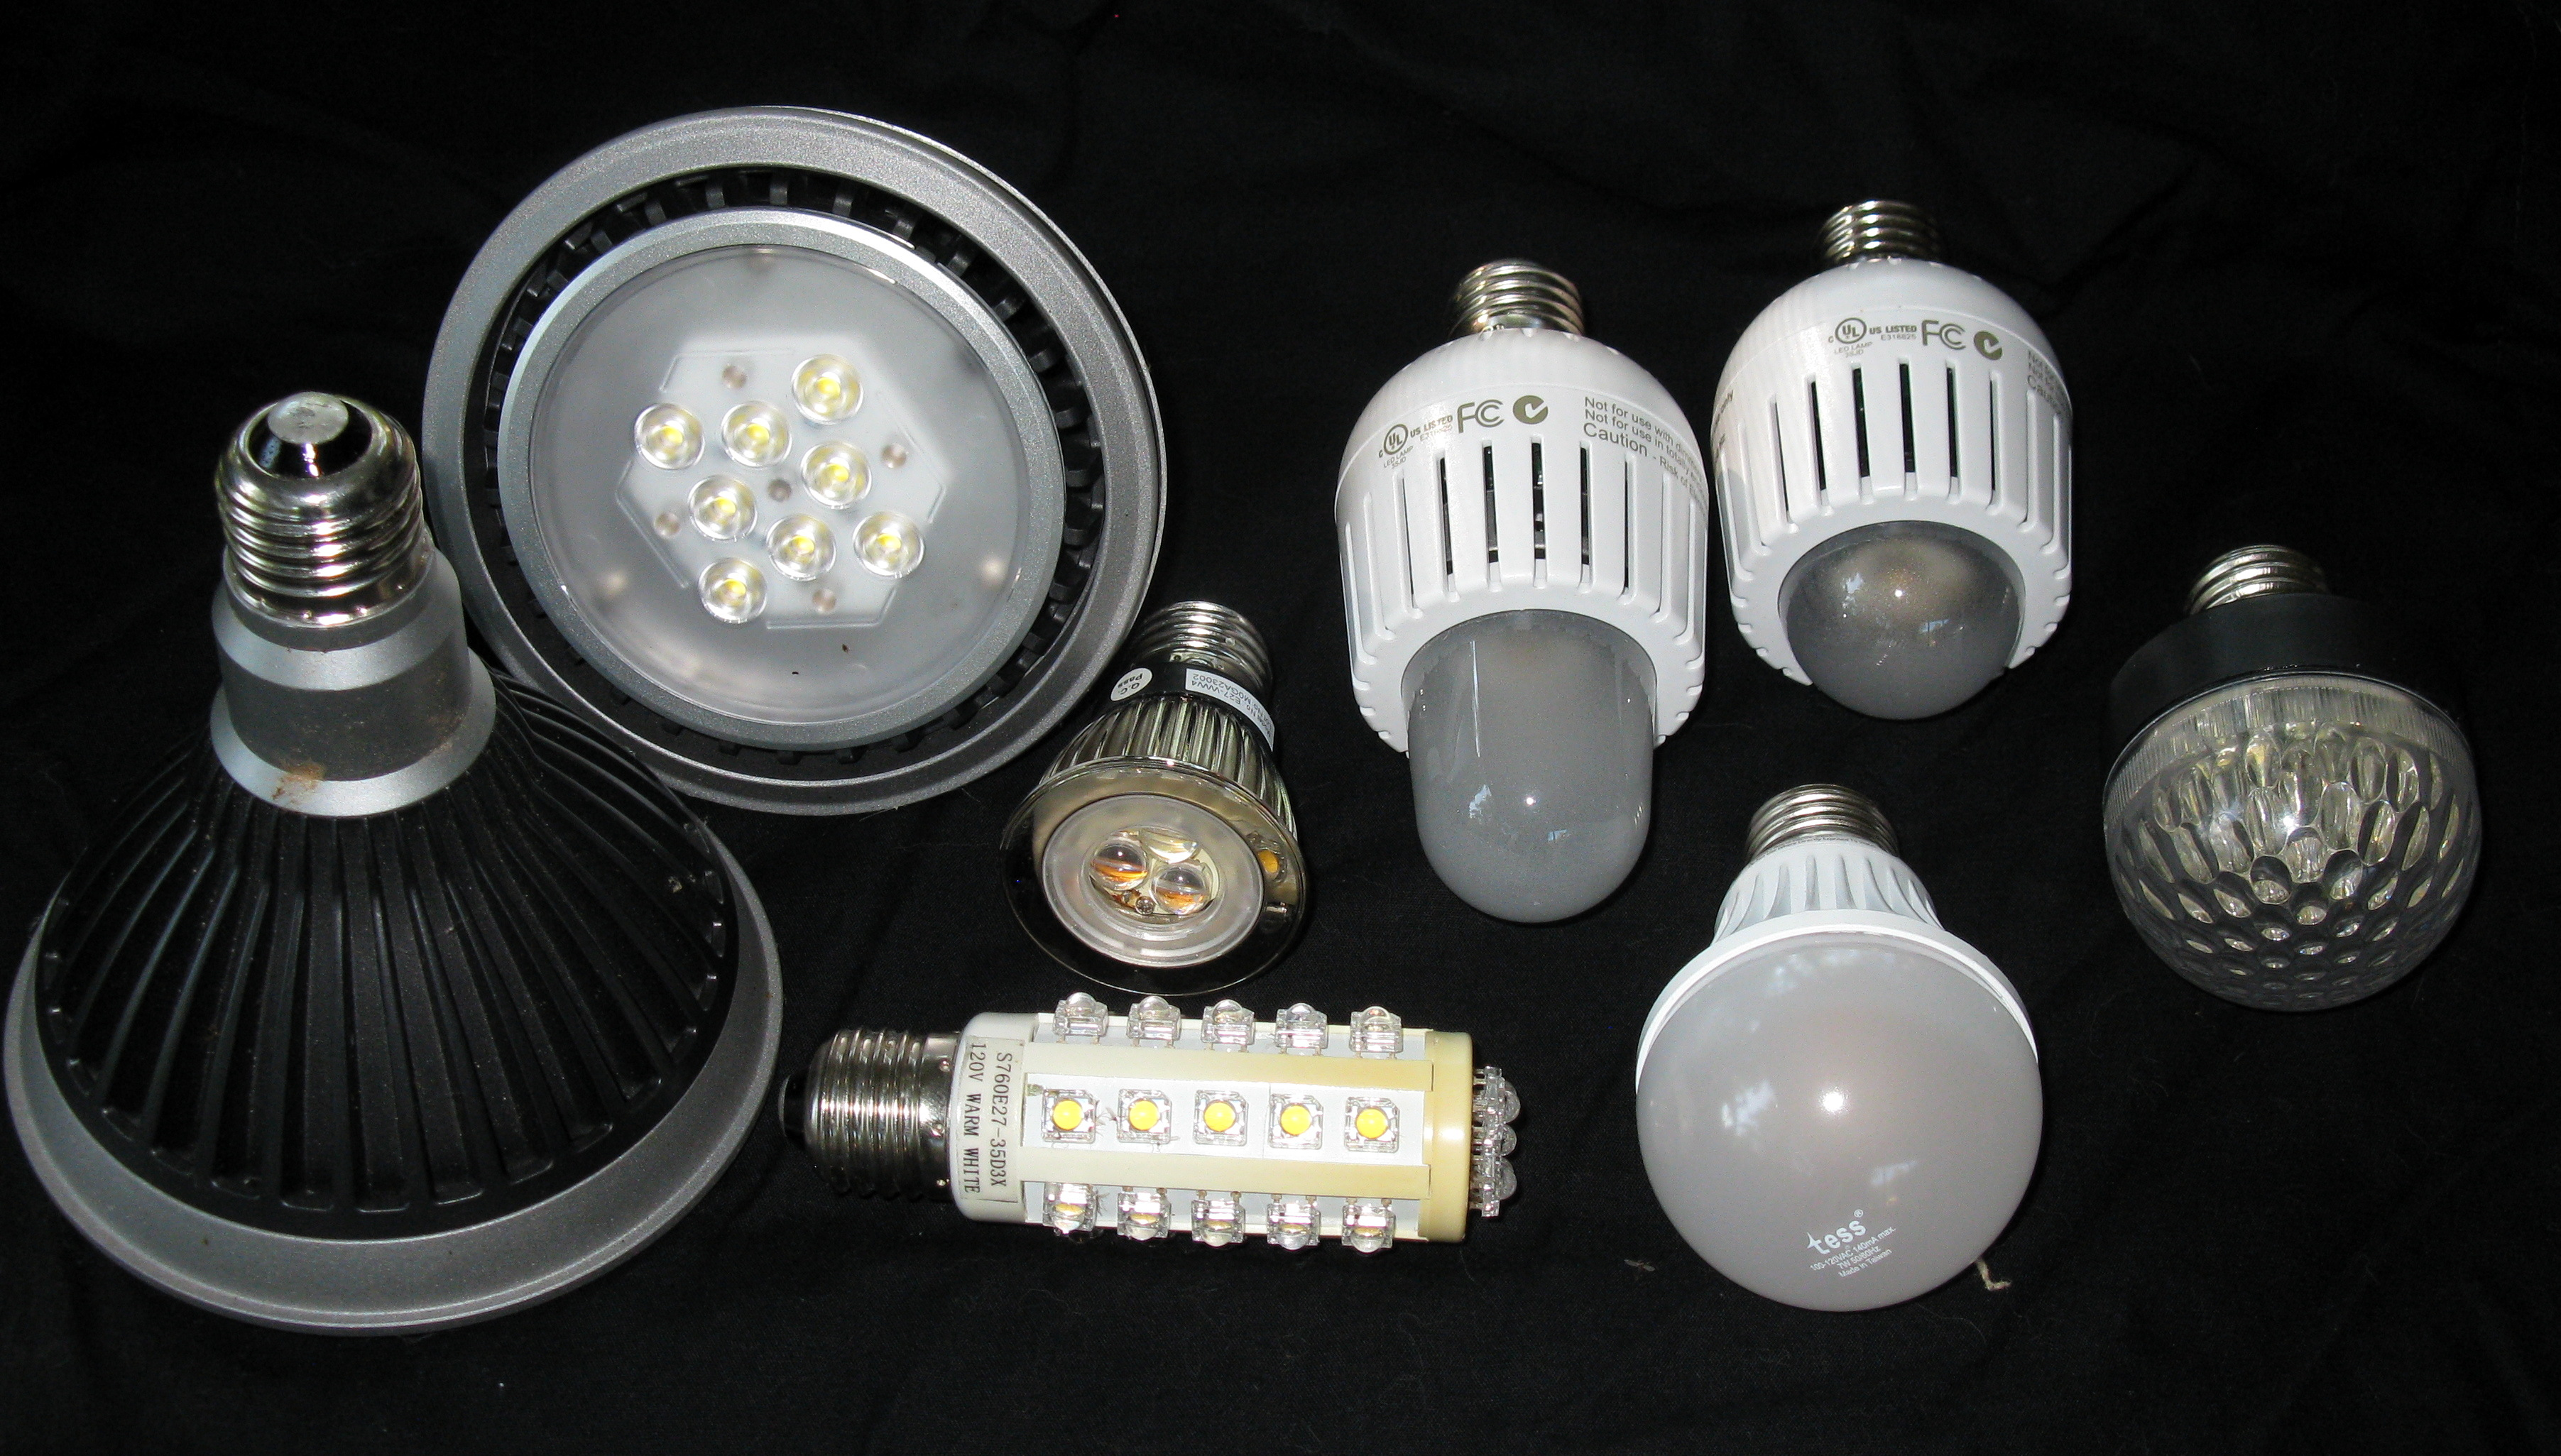 Led Lamp Fixtures an Assortment of Led Lamps